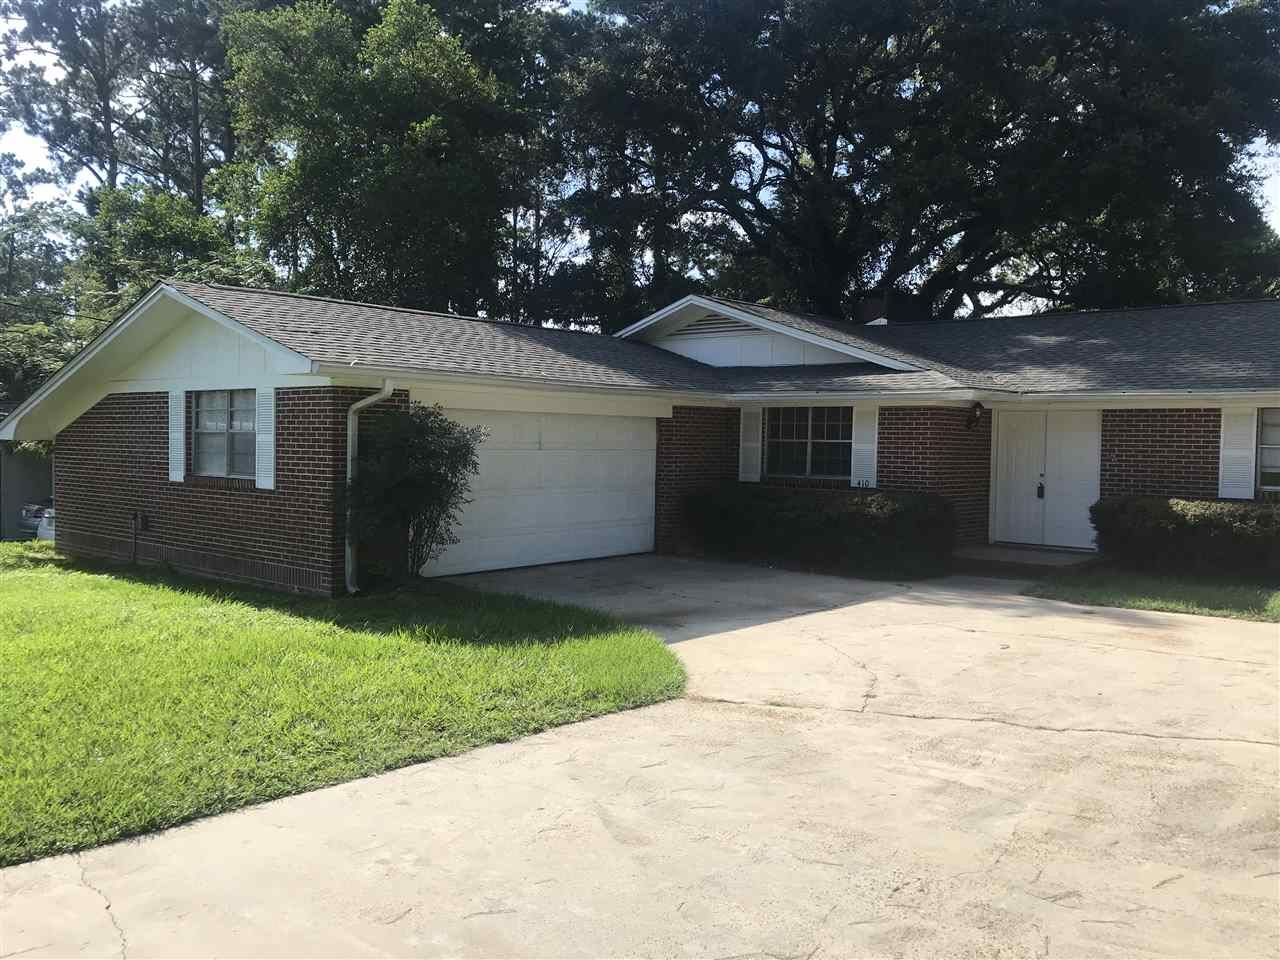 Photo of 410 Gaither Drive, TALLAHASSEE, FL 32305 (MLS # 320772)